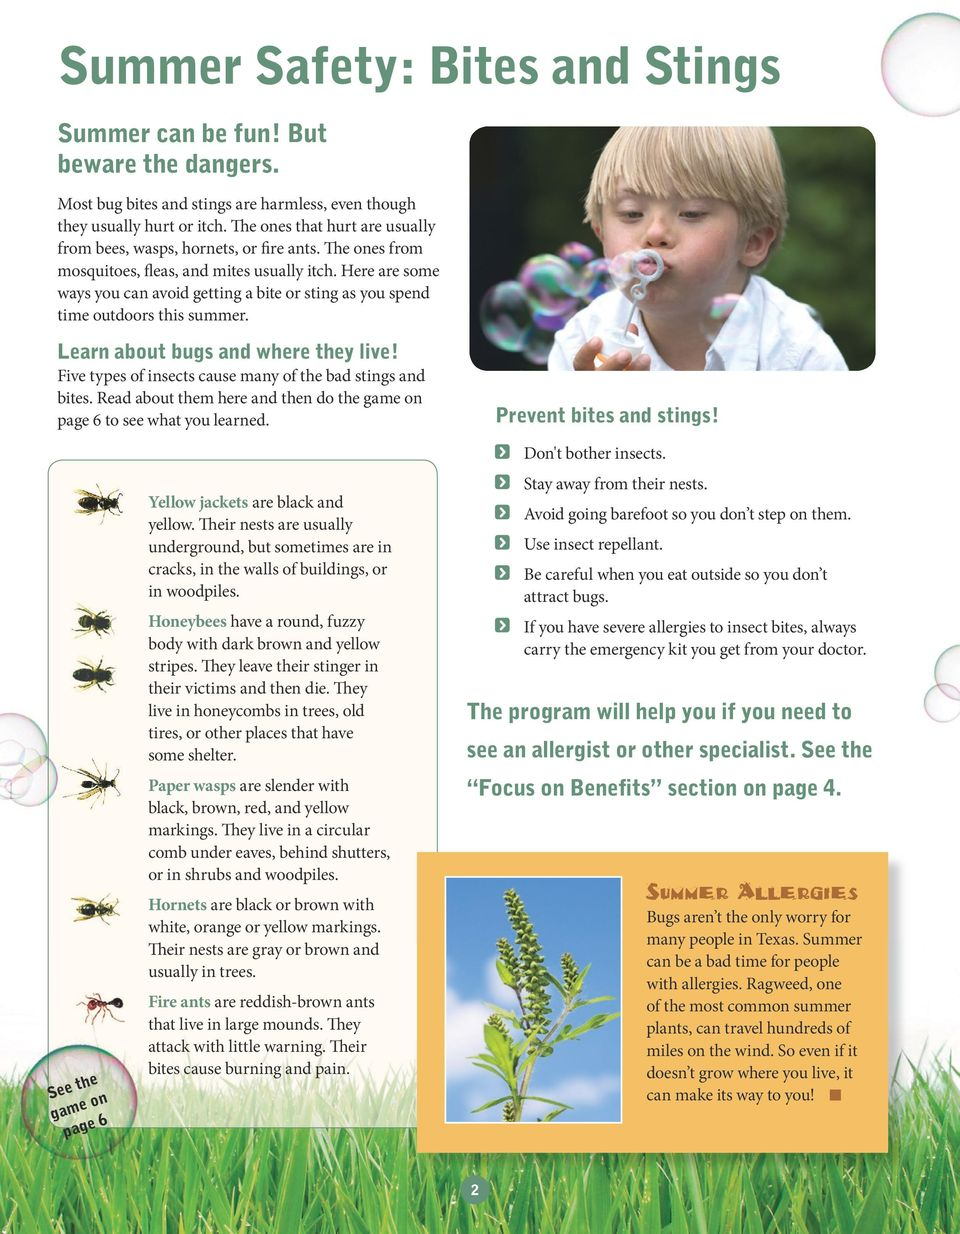 Here are some ways you can avoid getting a bite or sting as you spend time outdoors this summer. Learn about bugs and where they live! Five types of insects cause many of the bad stings and bites.